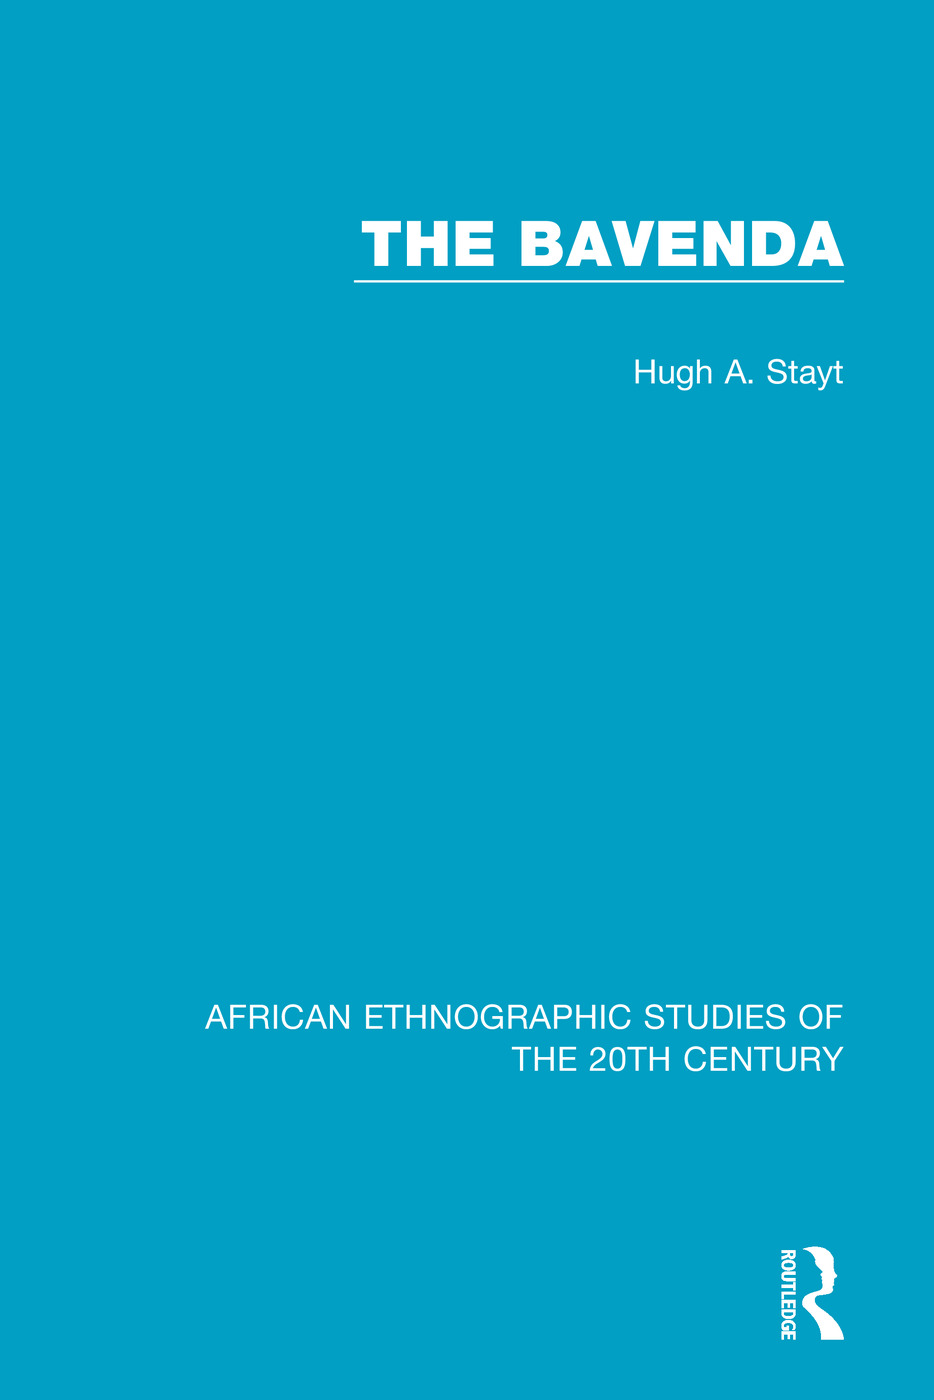 The Bavenda book cover